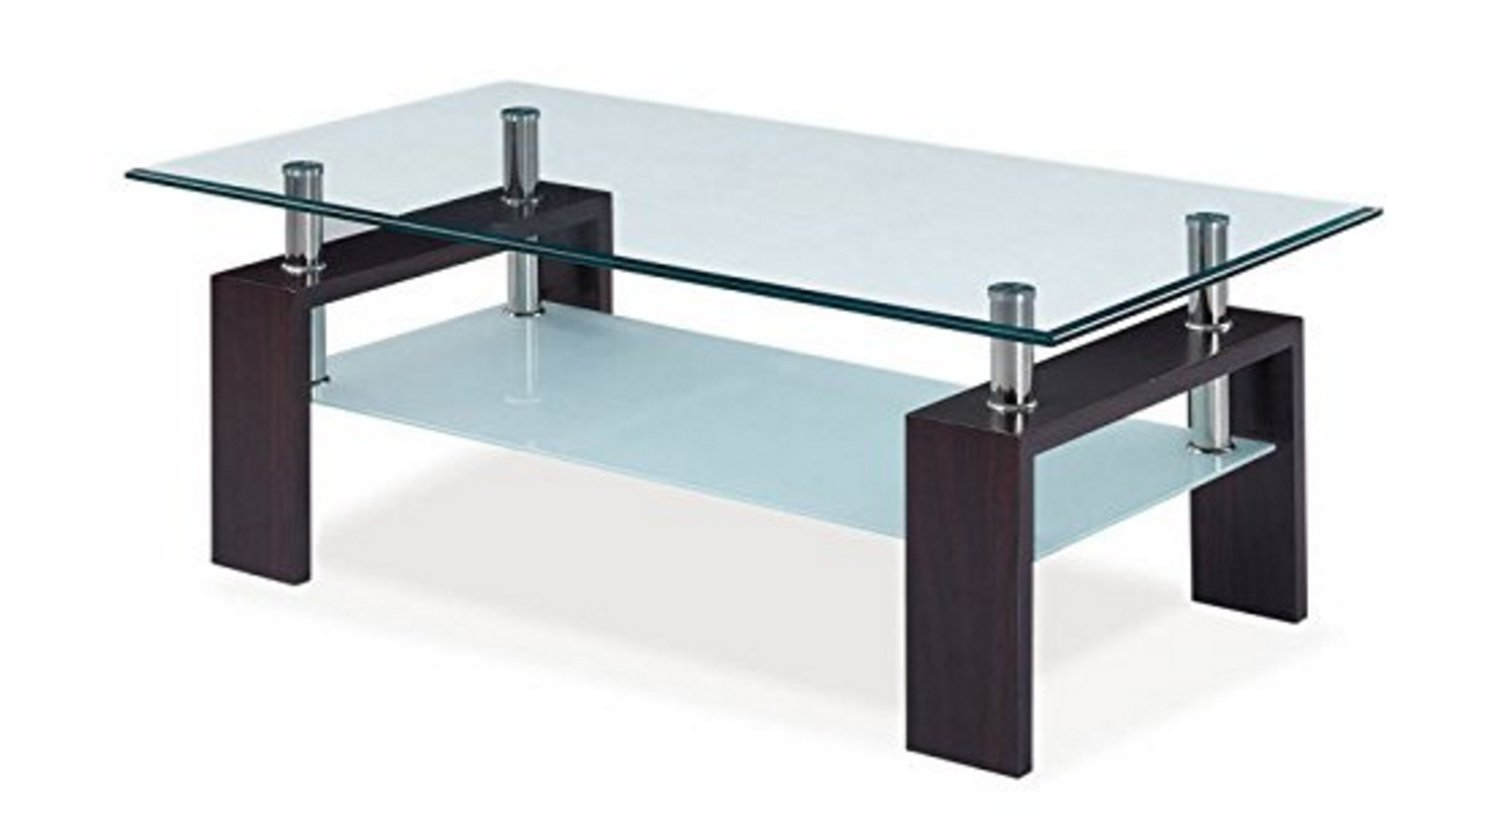 luxus table basse amazon id es de conception de table basse. Black Bedroom Furniture Sets. Home Design Ideas